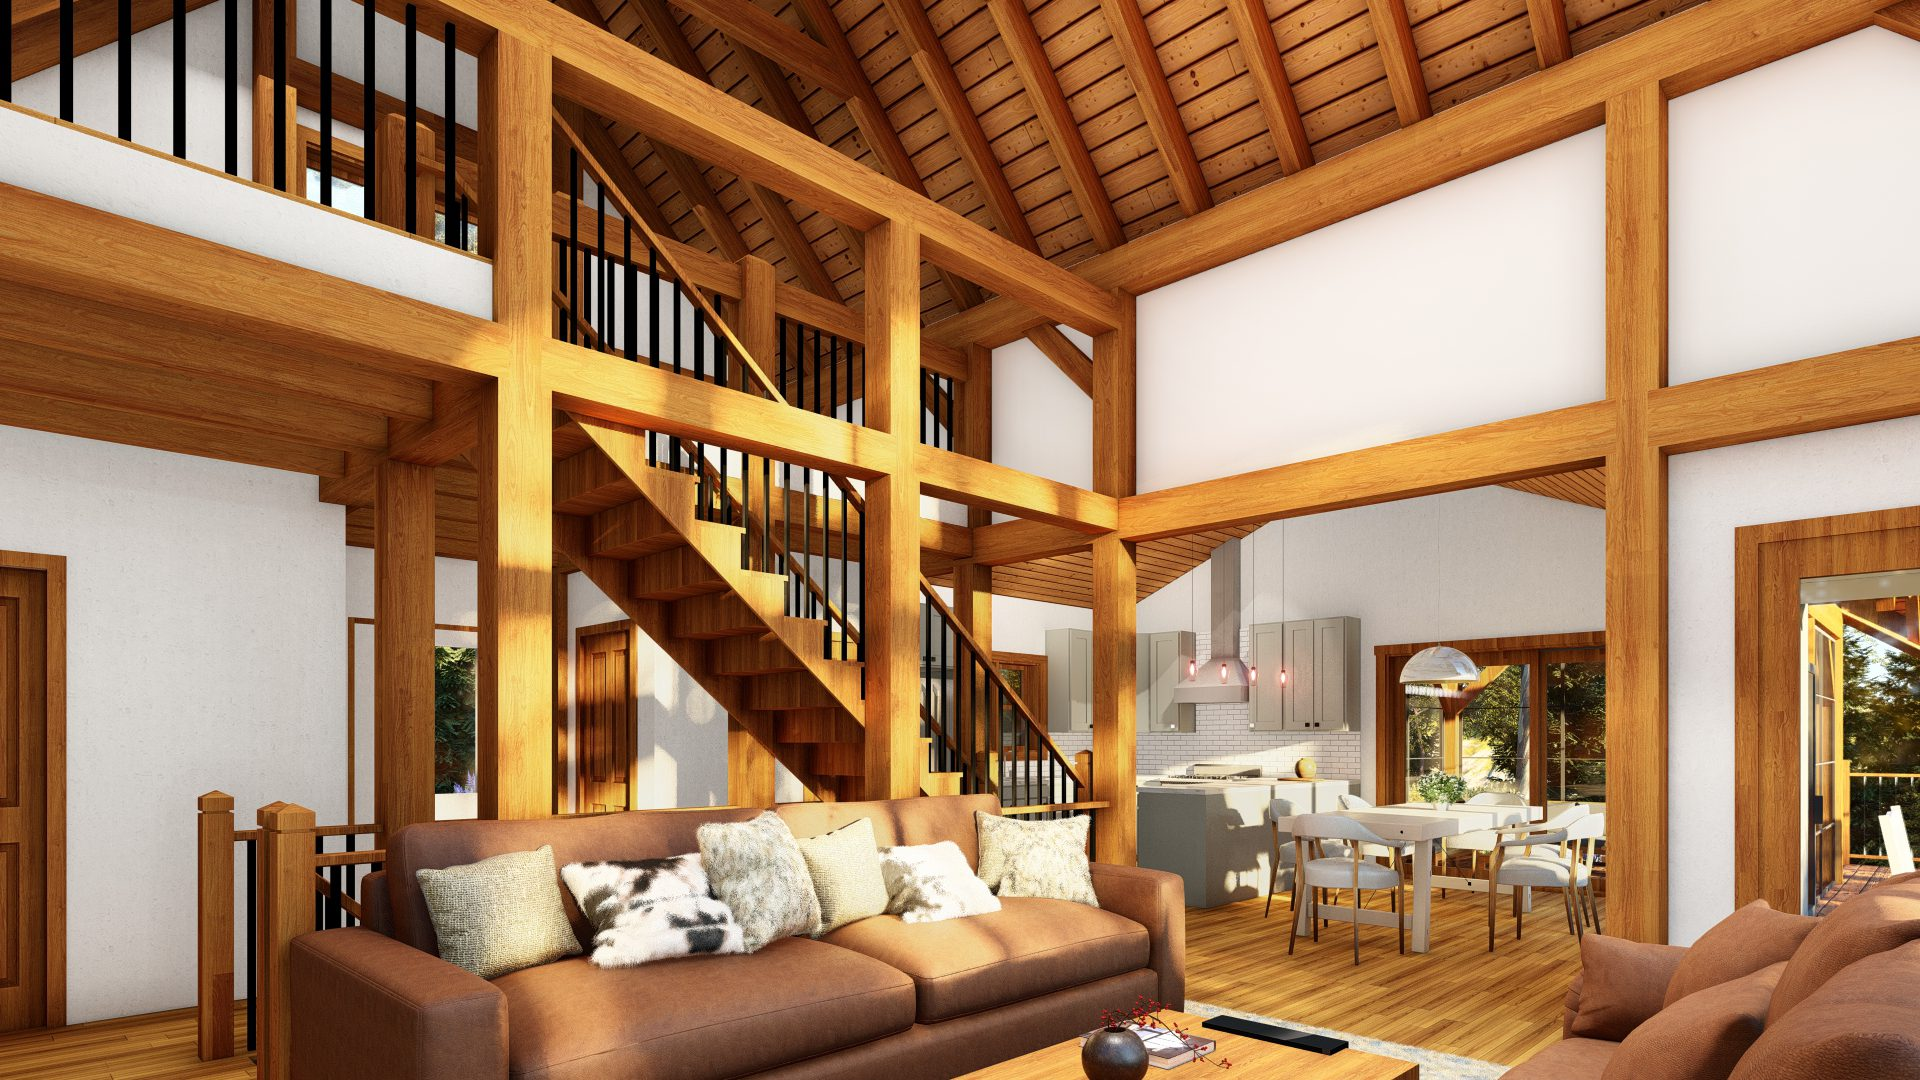 Normerica Timber Frames, House Plans, The Tobermory 3949, Interior, Living Room, Stairs to Loft